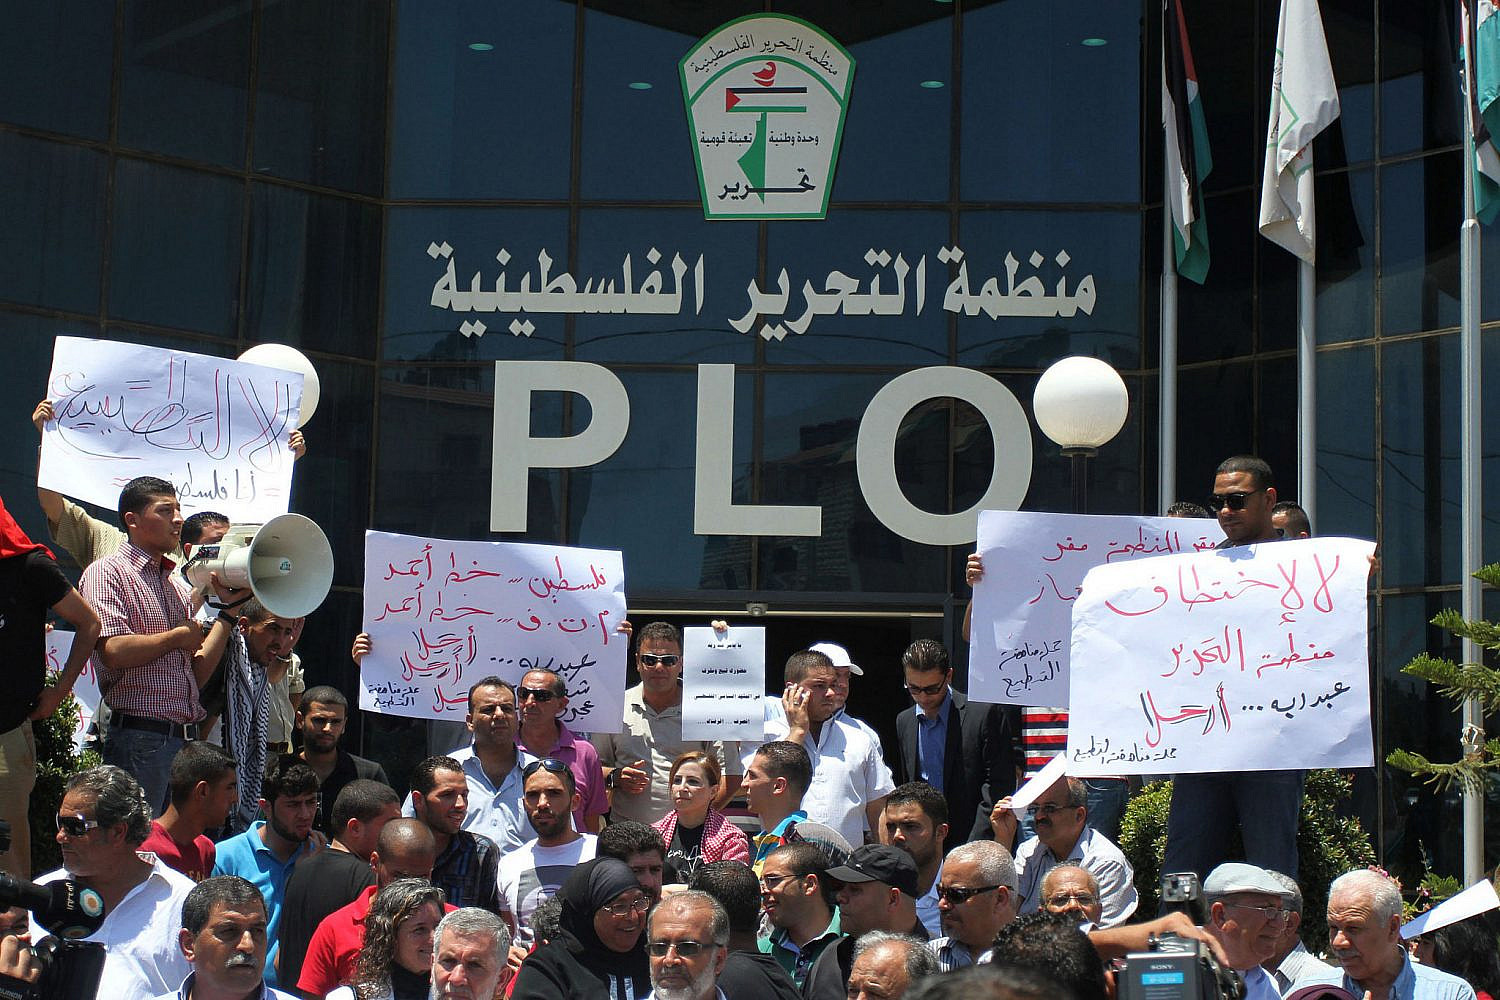 Palestinians demonstrate in front of the Palestine Liberation Organization (PLO) offices in the West Bank city of Ramallah, on July 15, 2013, against secret meetings between officials from the PLO and Israel. (Issam Rimawi/Flash90)